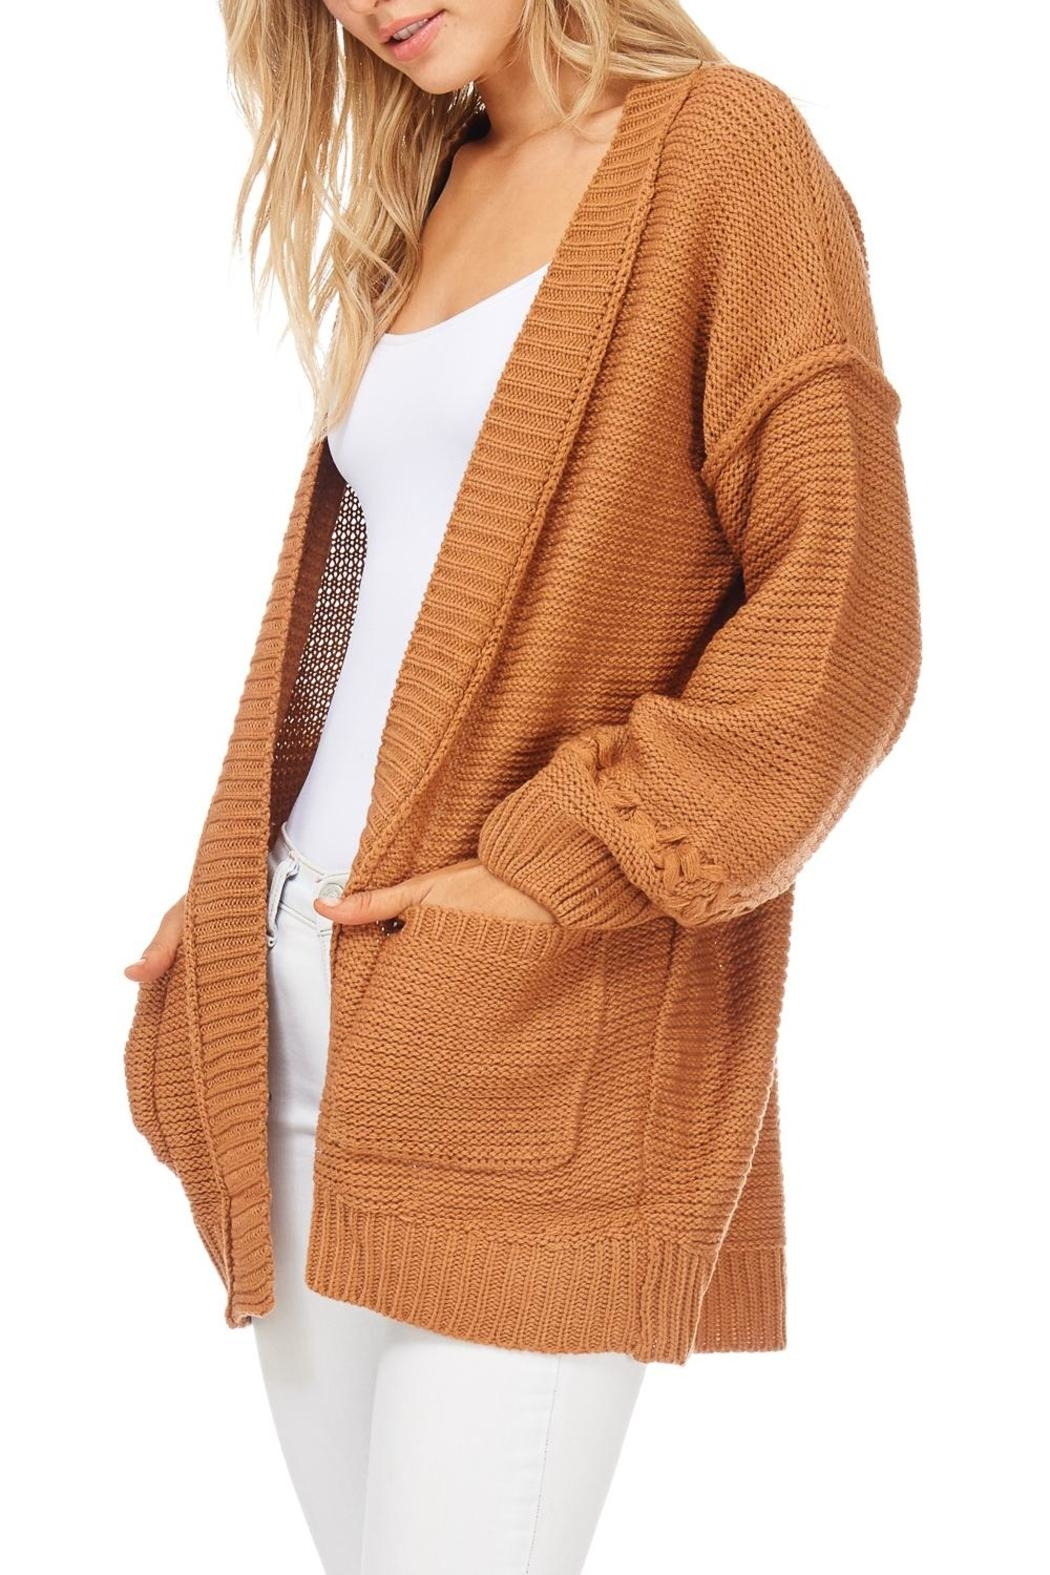 LoveRiche Camel Boyfriend Cardigan - Front Full Image